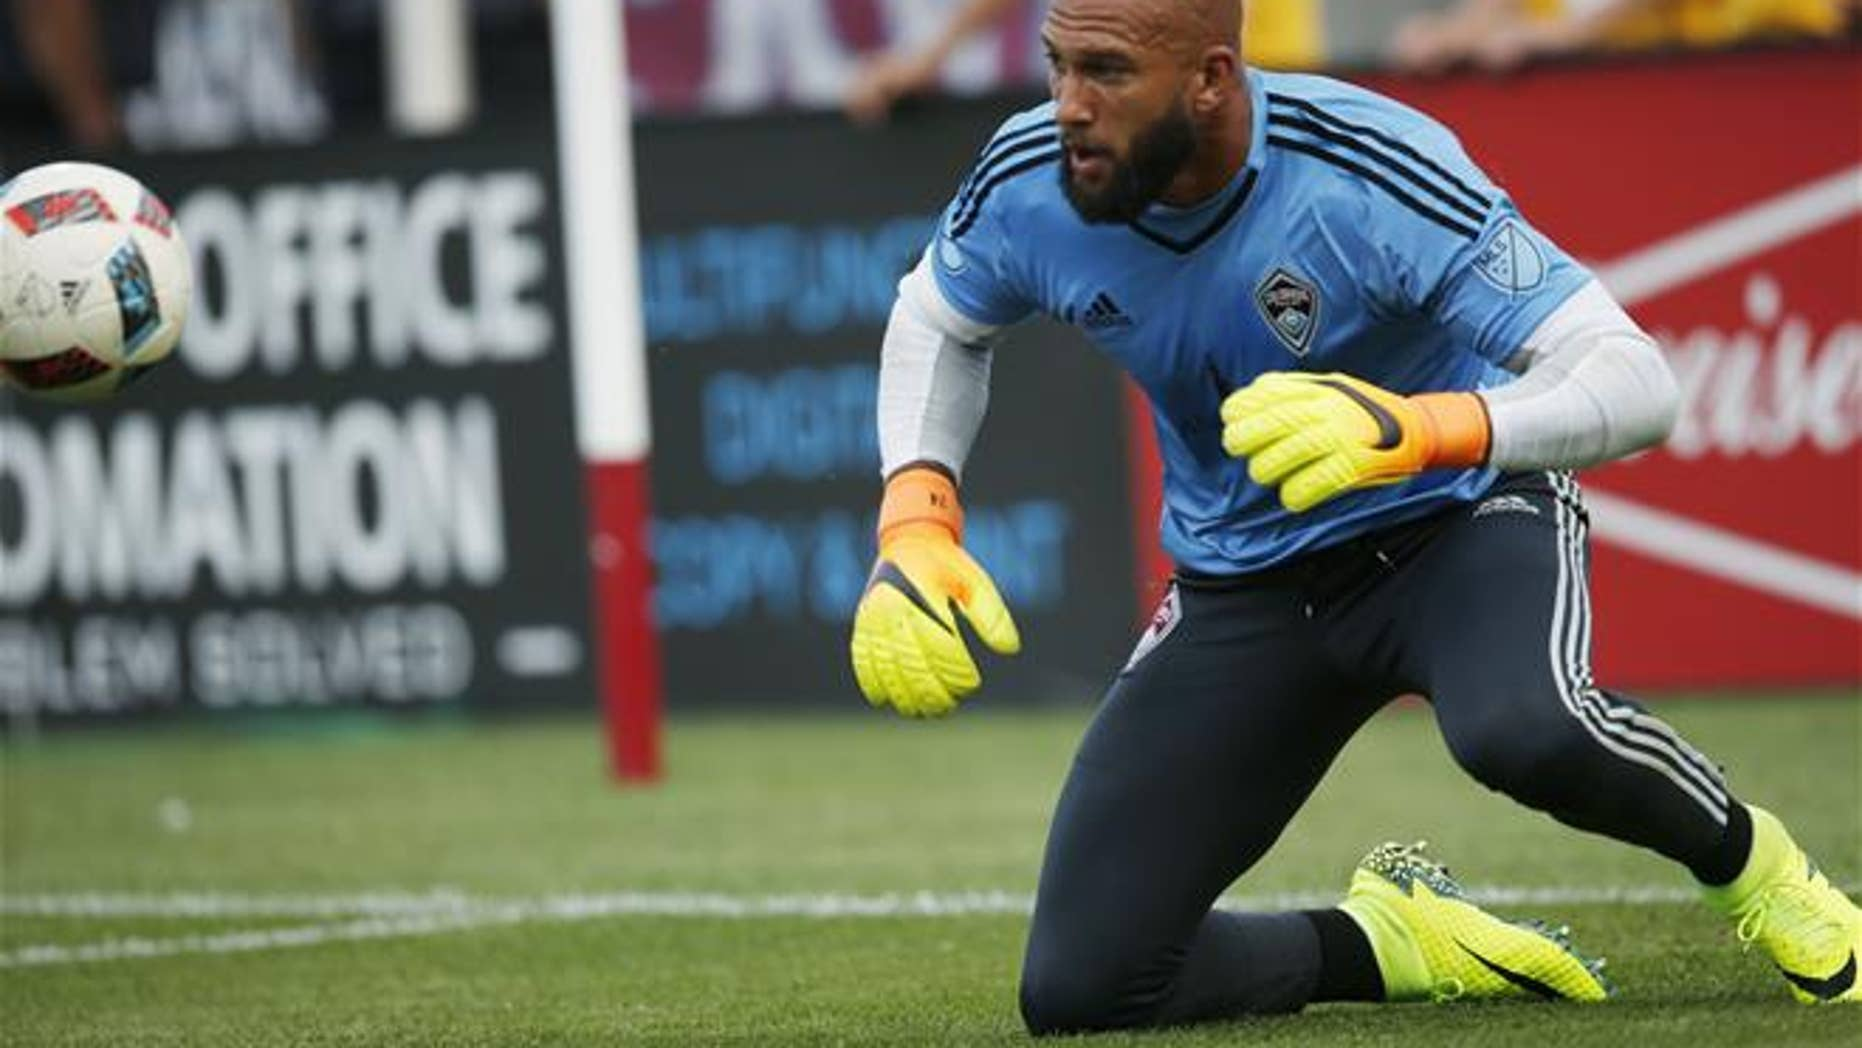 Colorado Rapids goalkeeper Tim Howard (1) warms up before the first half of a Major League Soccer match Monday, July 4, 2016, in Commerce City, Colo.